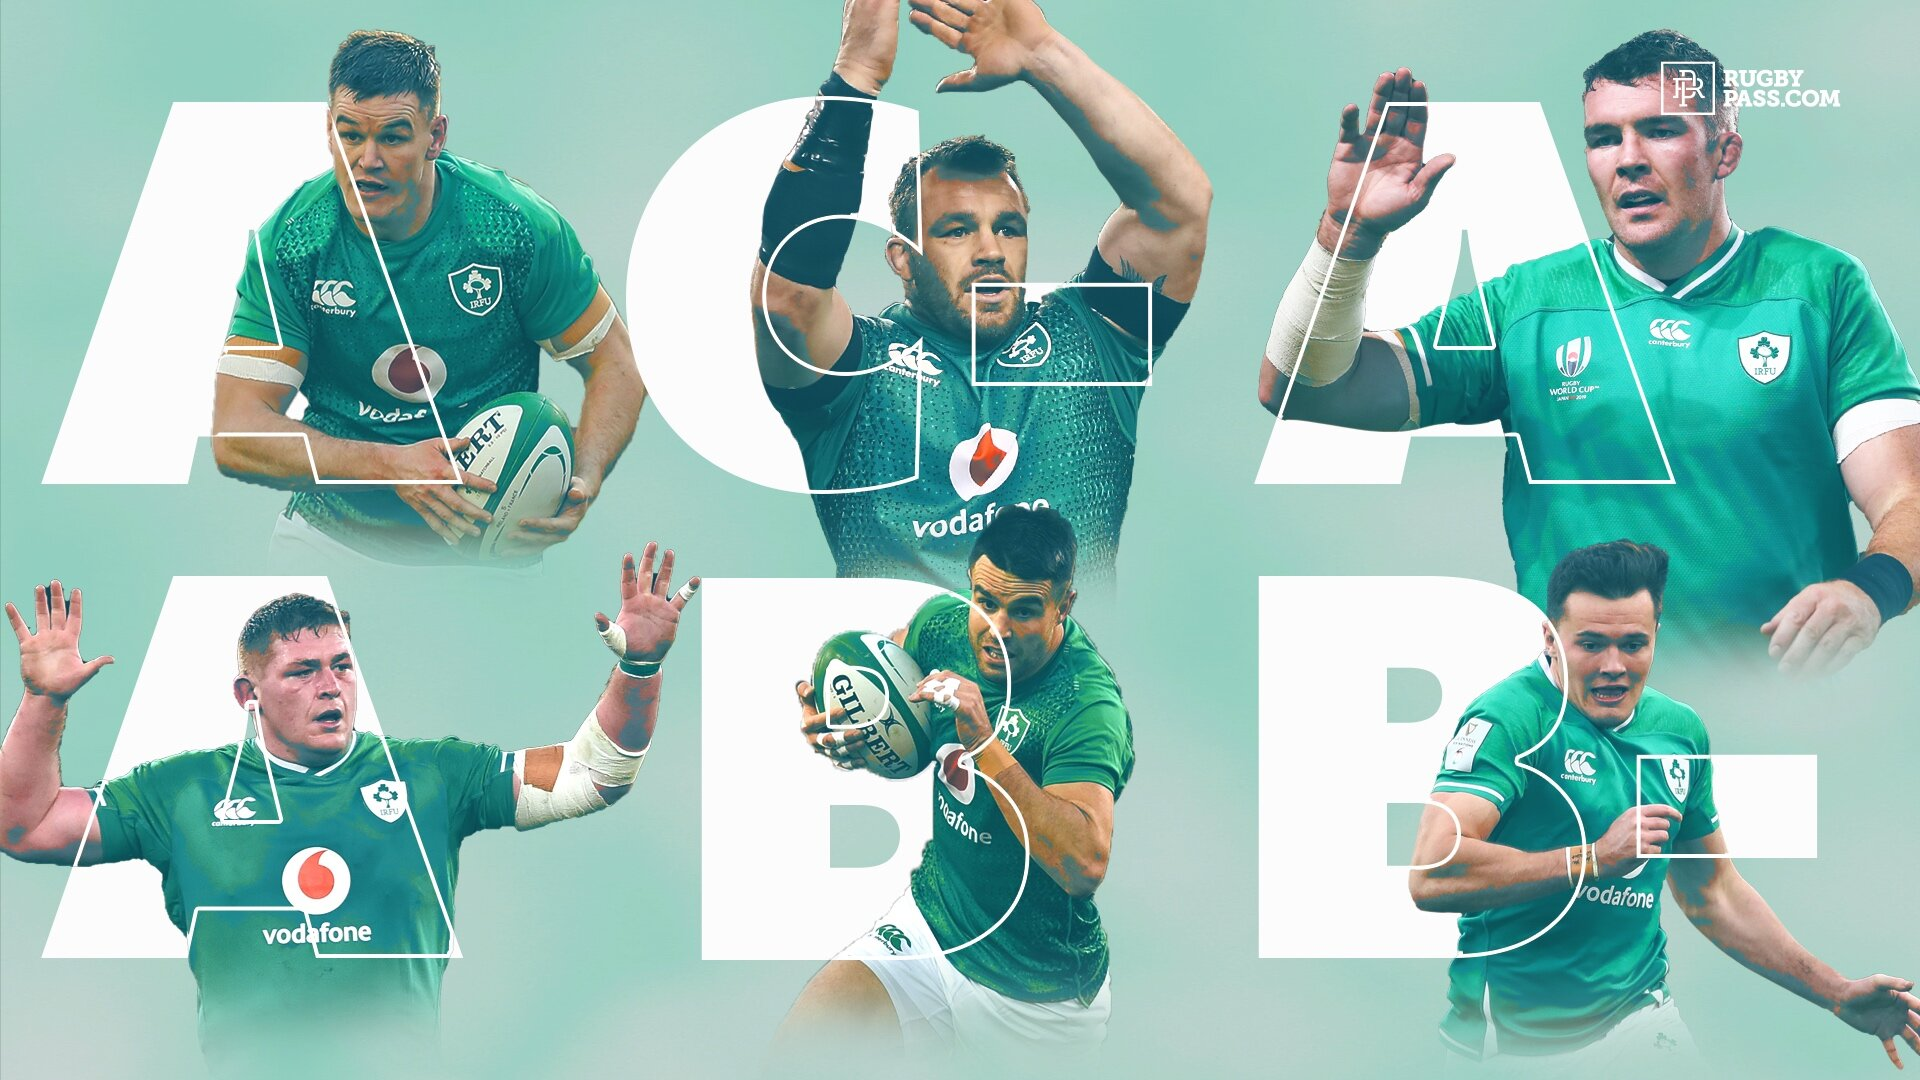 IRELAND MID-TERM REPORT: Captain Sexton, Stander and Ryan lead the way but room for improvement at Twickenham